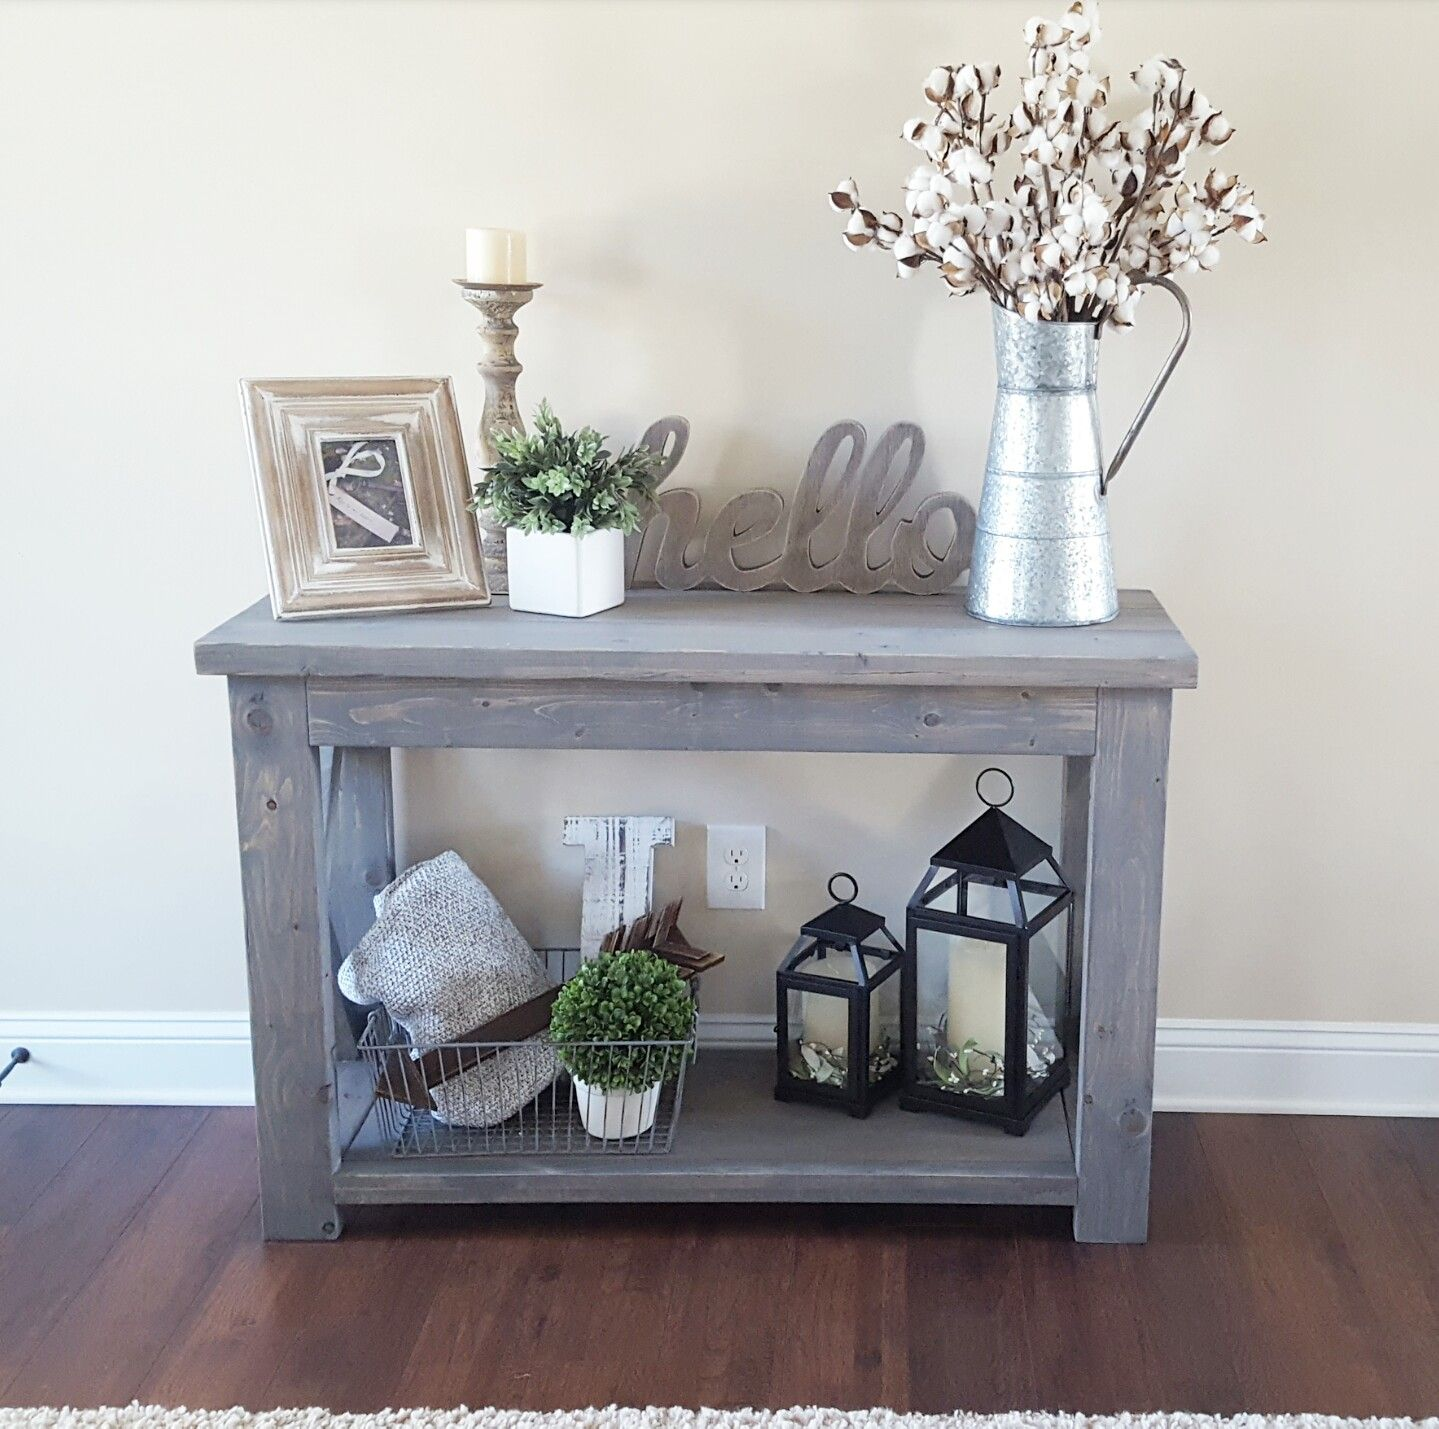 modified Ana White's Rustic X Console table, and used